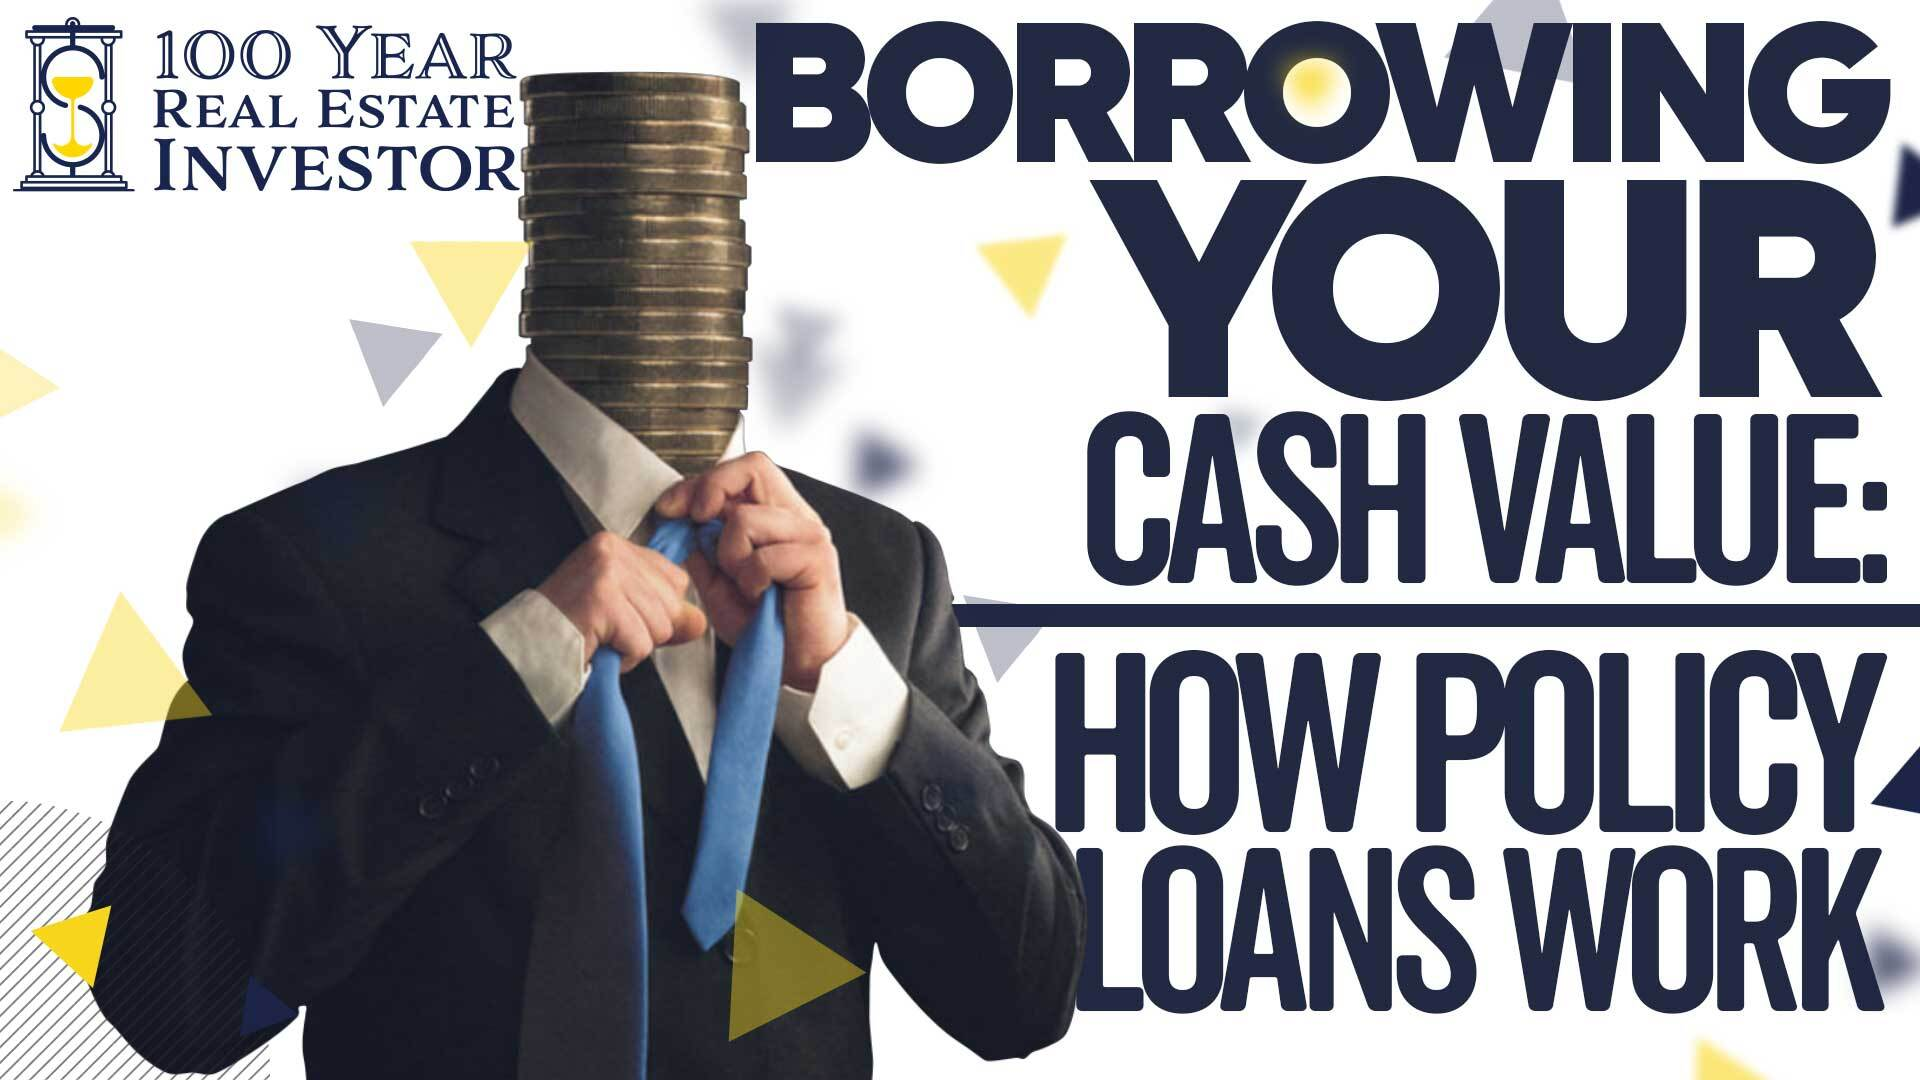 How Policy Loans Work